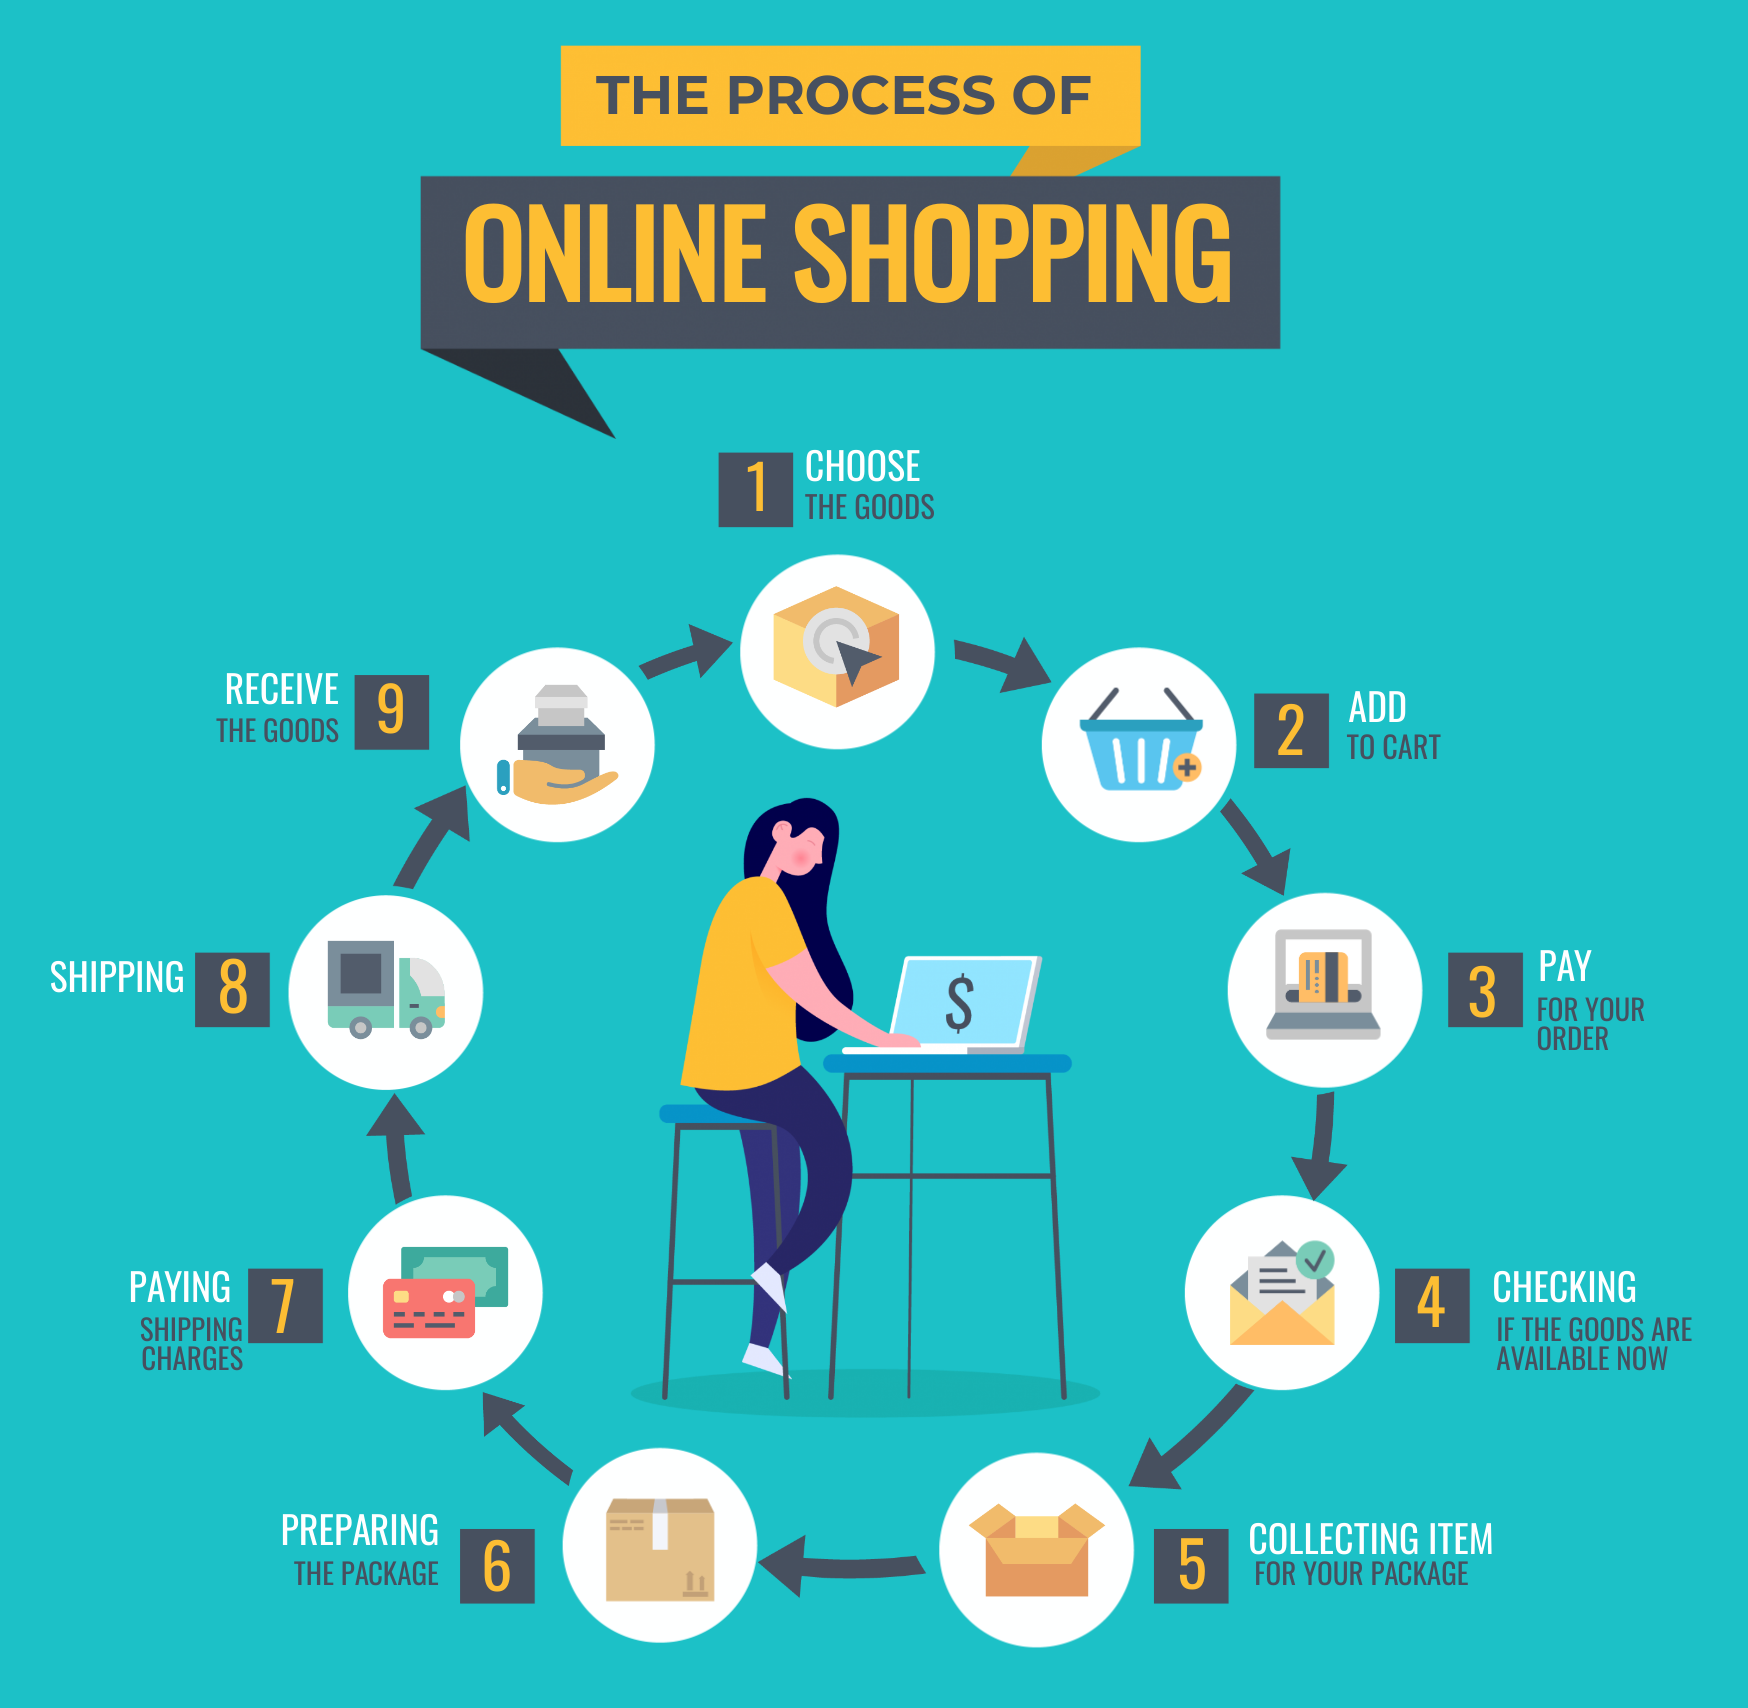 An infographic about the process of online shopping